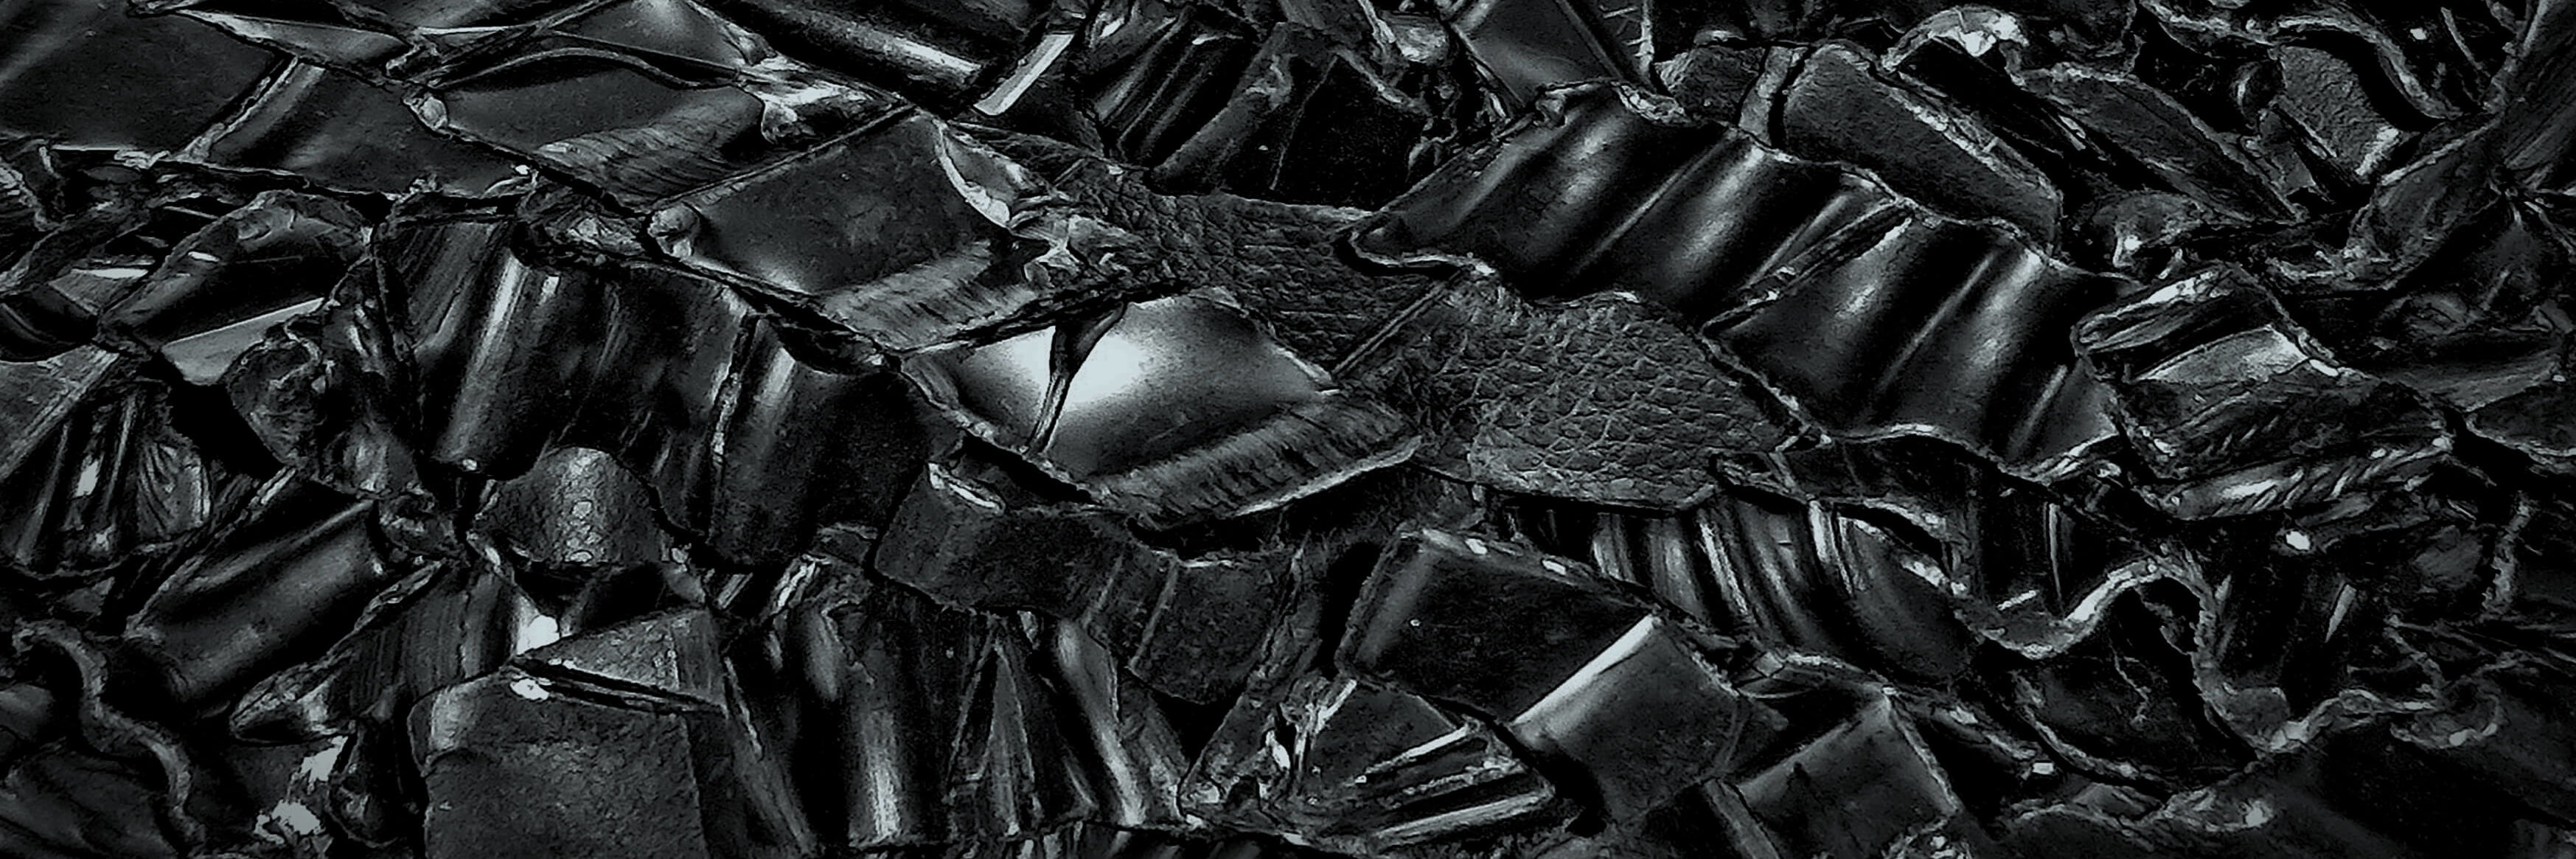 Black plastics flakes